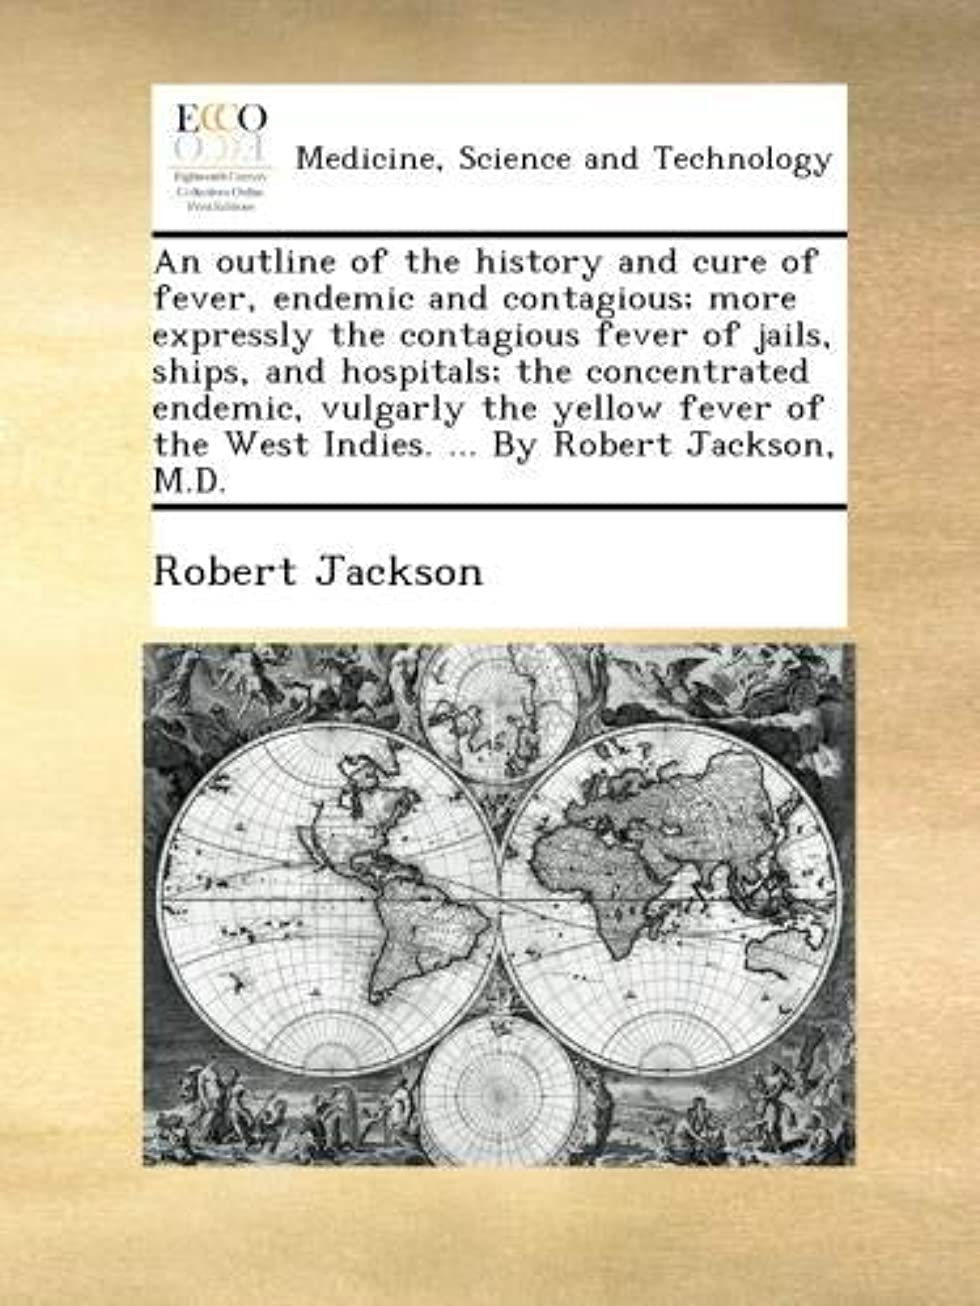 大量刈る飢An outline of the history and cure of fever, endemic and contagious; more expressly the contagious fever of jails, ships, and hospitals; the concentrated endemic, vulgarly the yellow fever of the West Indies. ... By Robert Jackson, M.D.